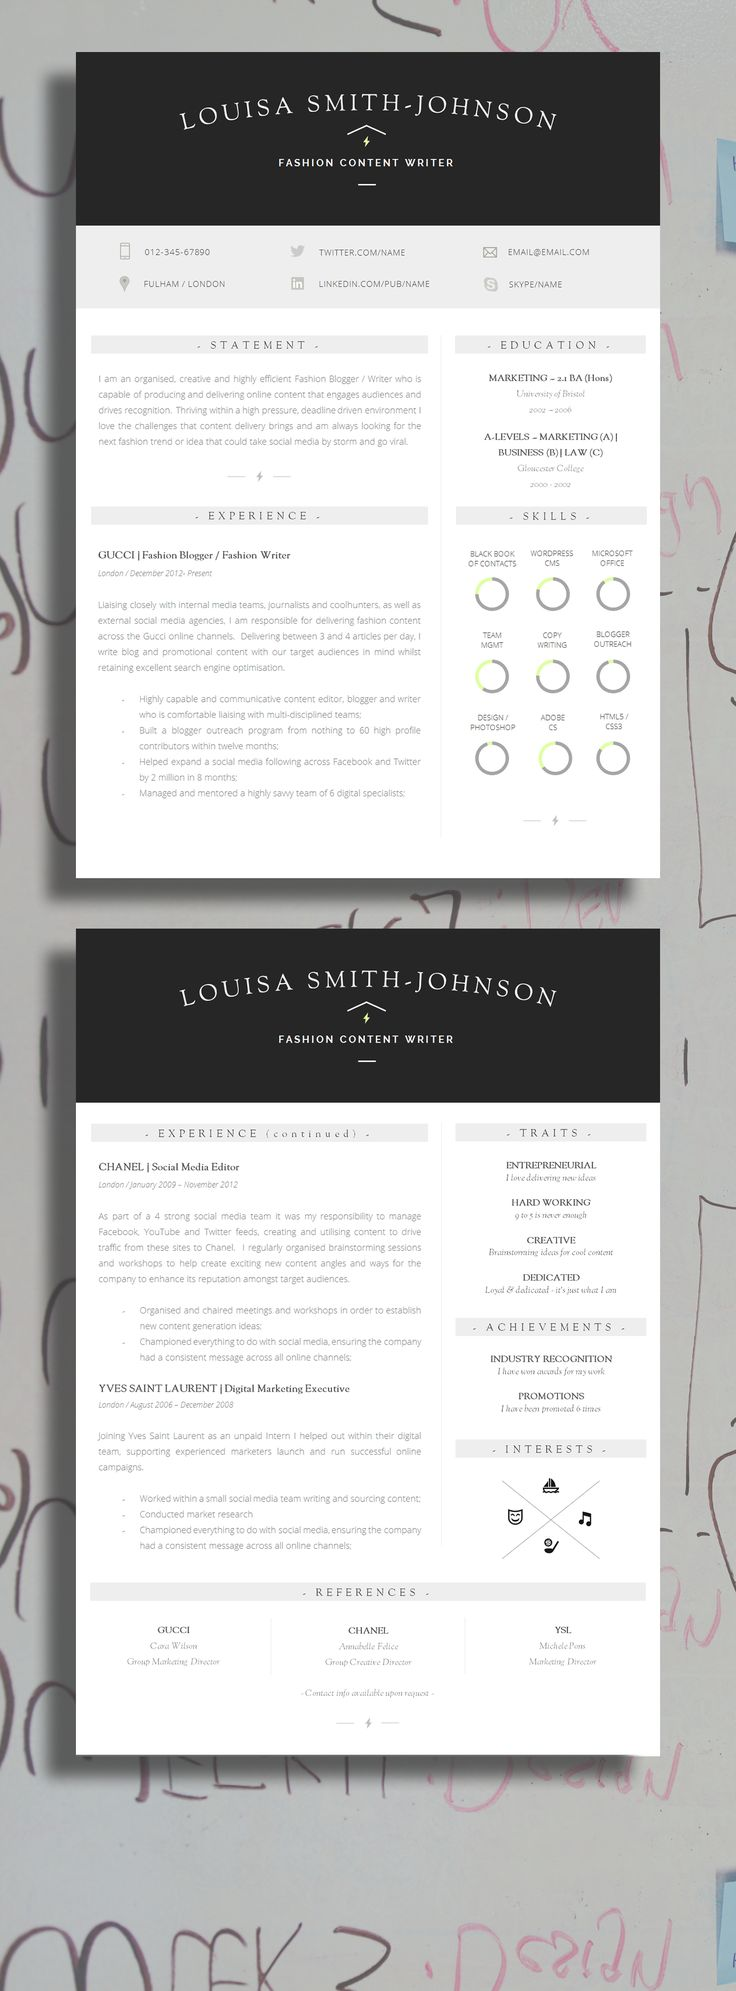 Cv Templates Design%0A Resume Design   Resume Template   Cover Letter   Resume Guide   Icons u